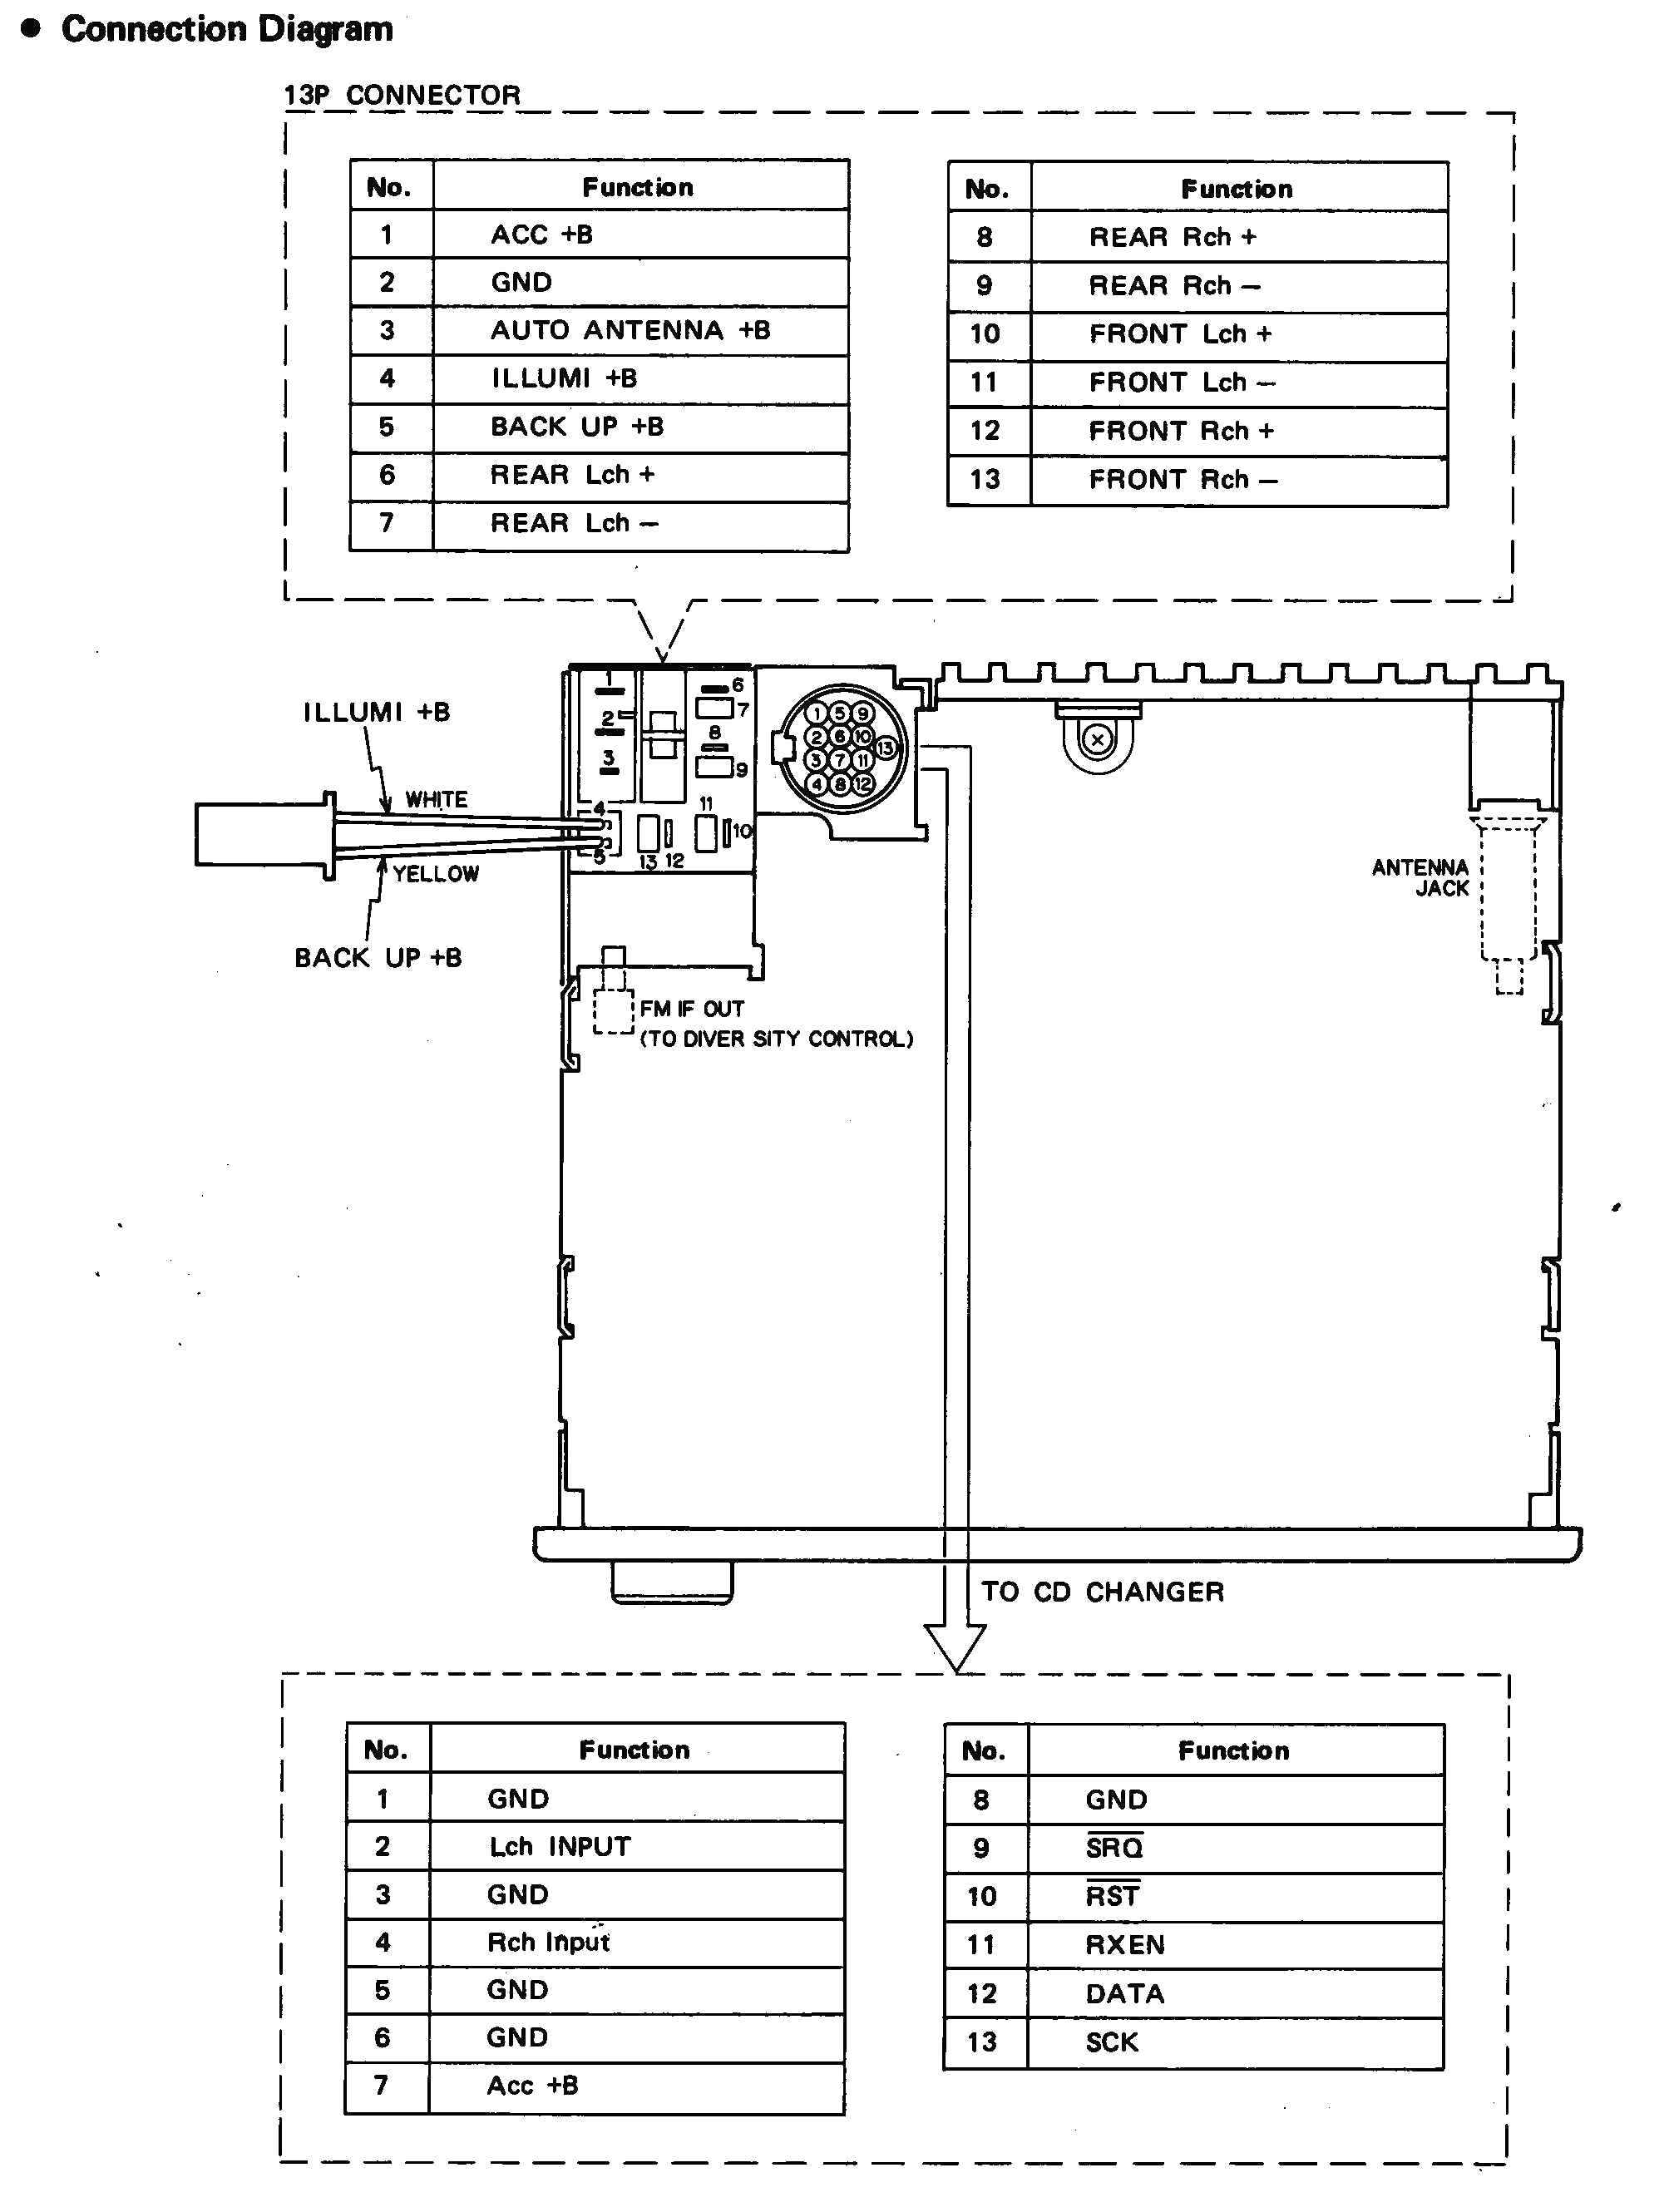 Wiring Diagram for A Jvc Car Stereo Factory Car Stereo Wiring Diagrams Wiring Diagram Of Wiring Diagram for A Jvc Car Stereo